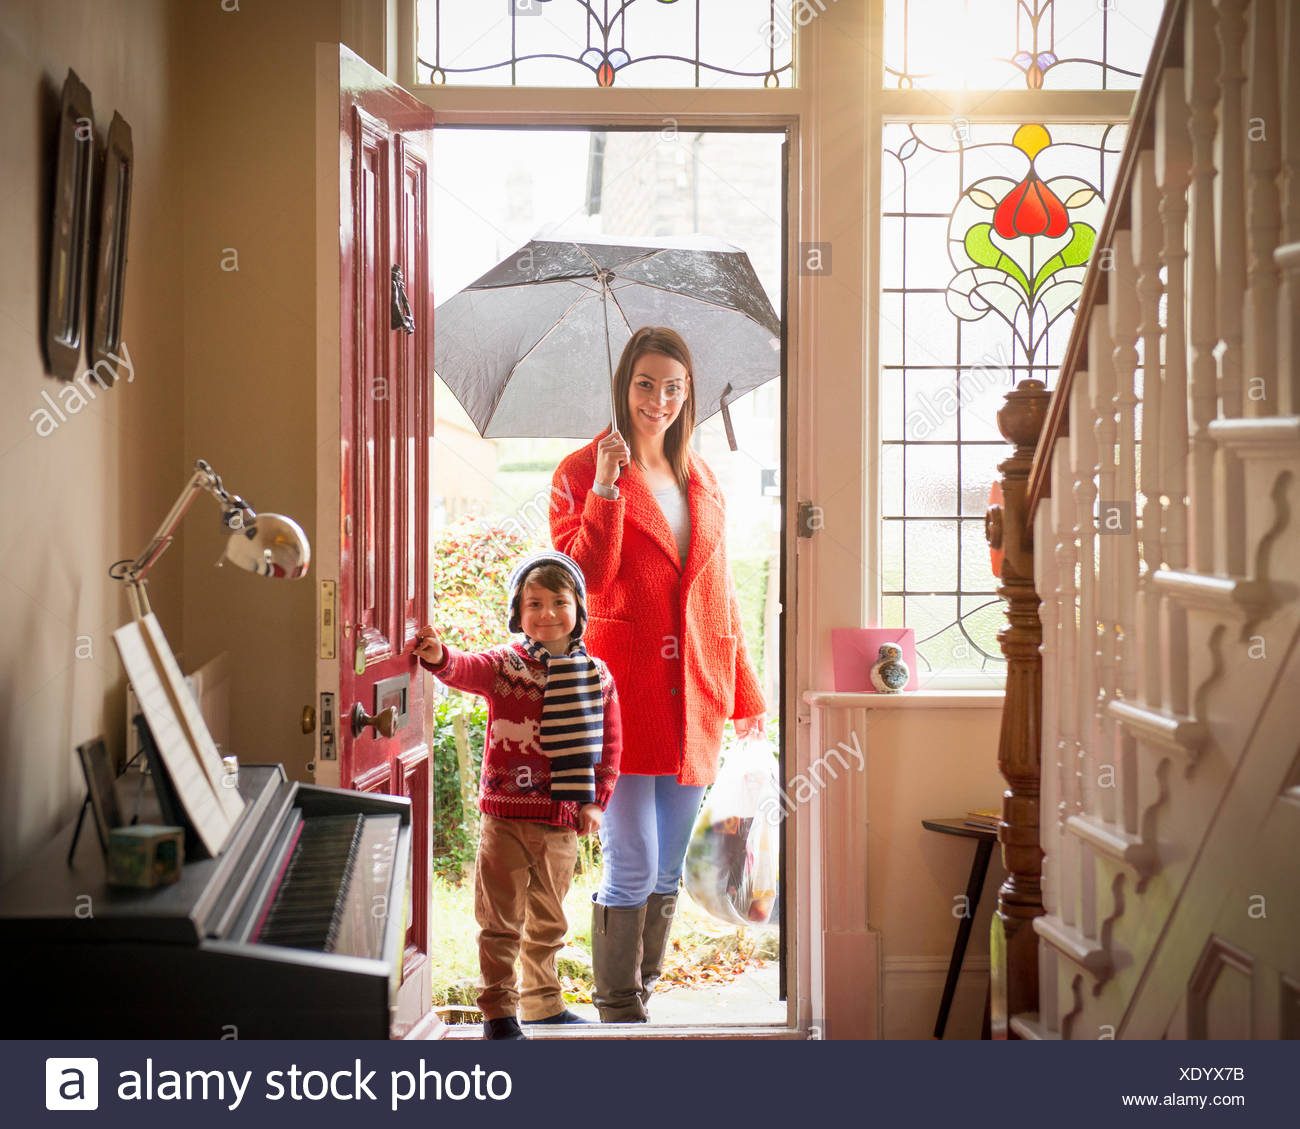 Mother and son arriving at front door of home on rainy day, portrait - Stock Image